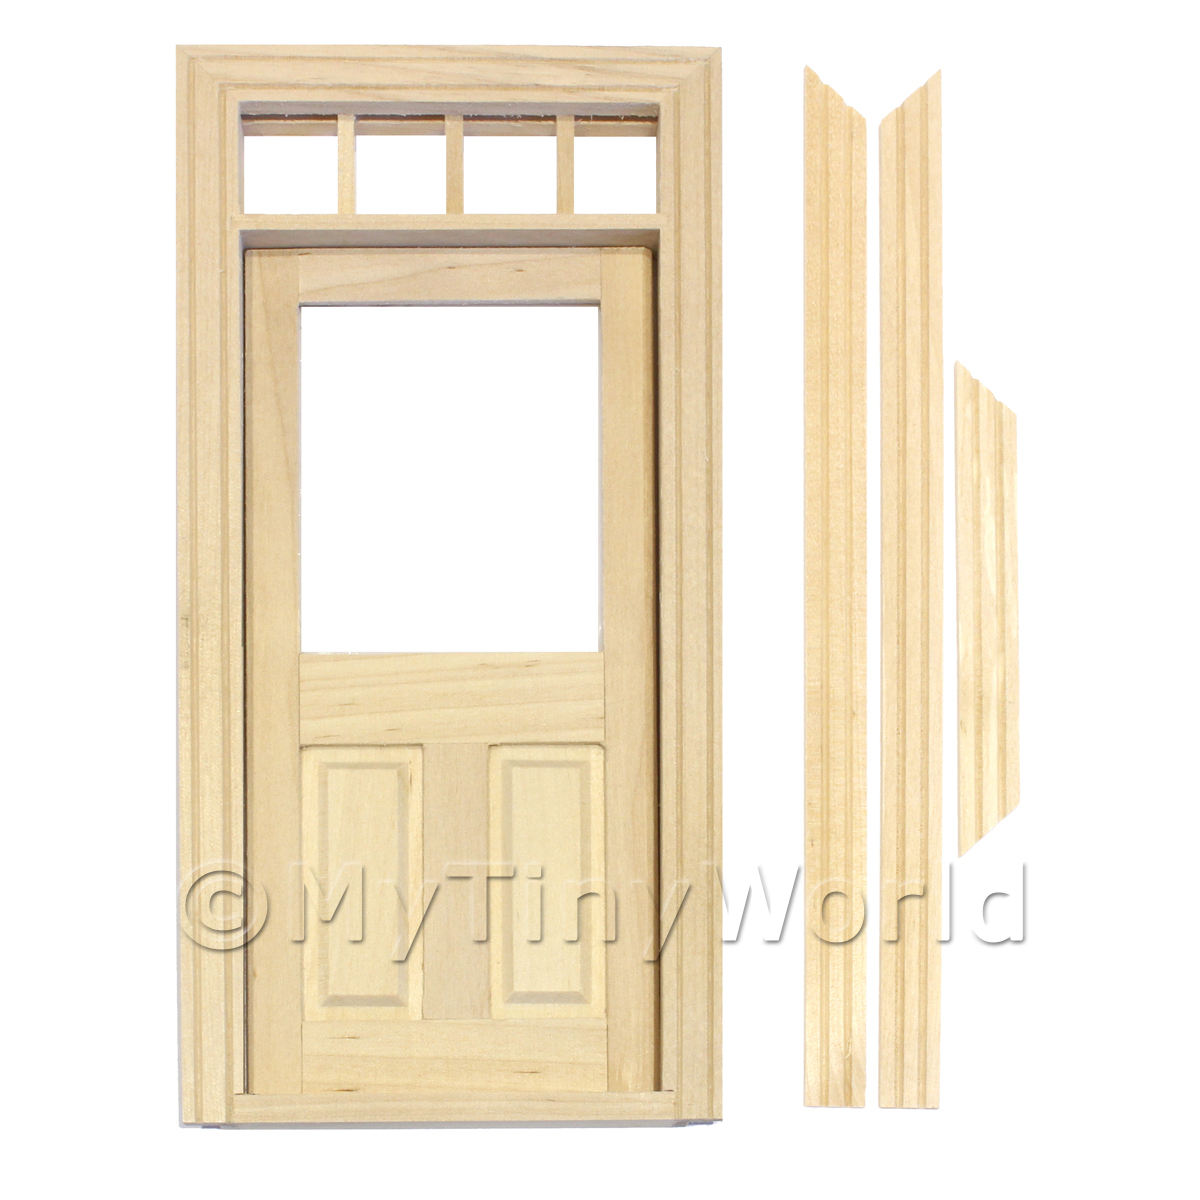 Dolls House Decorative Wood Door With Glaze Pane And 4 Open Panes